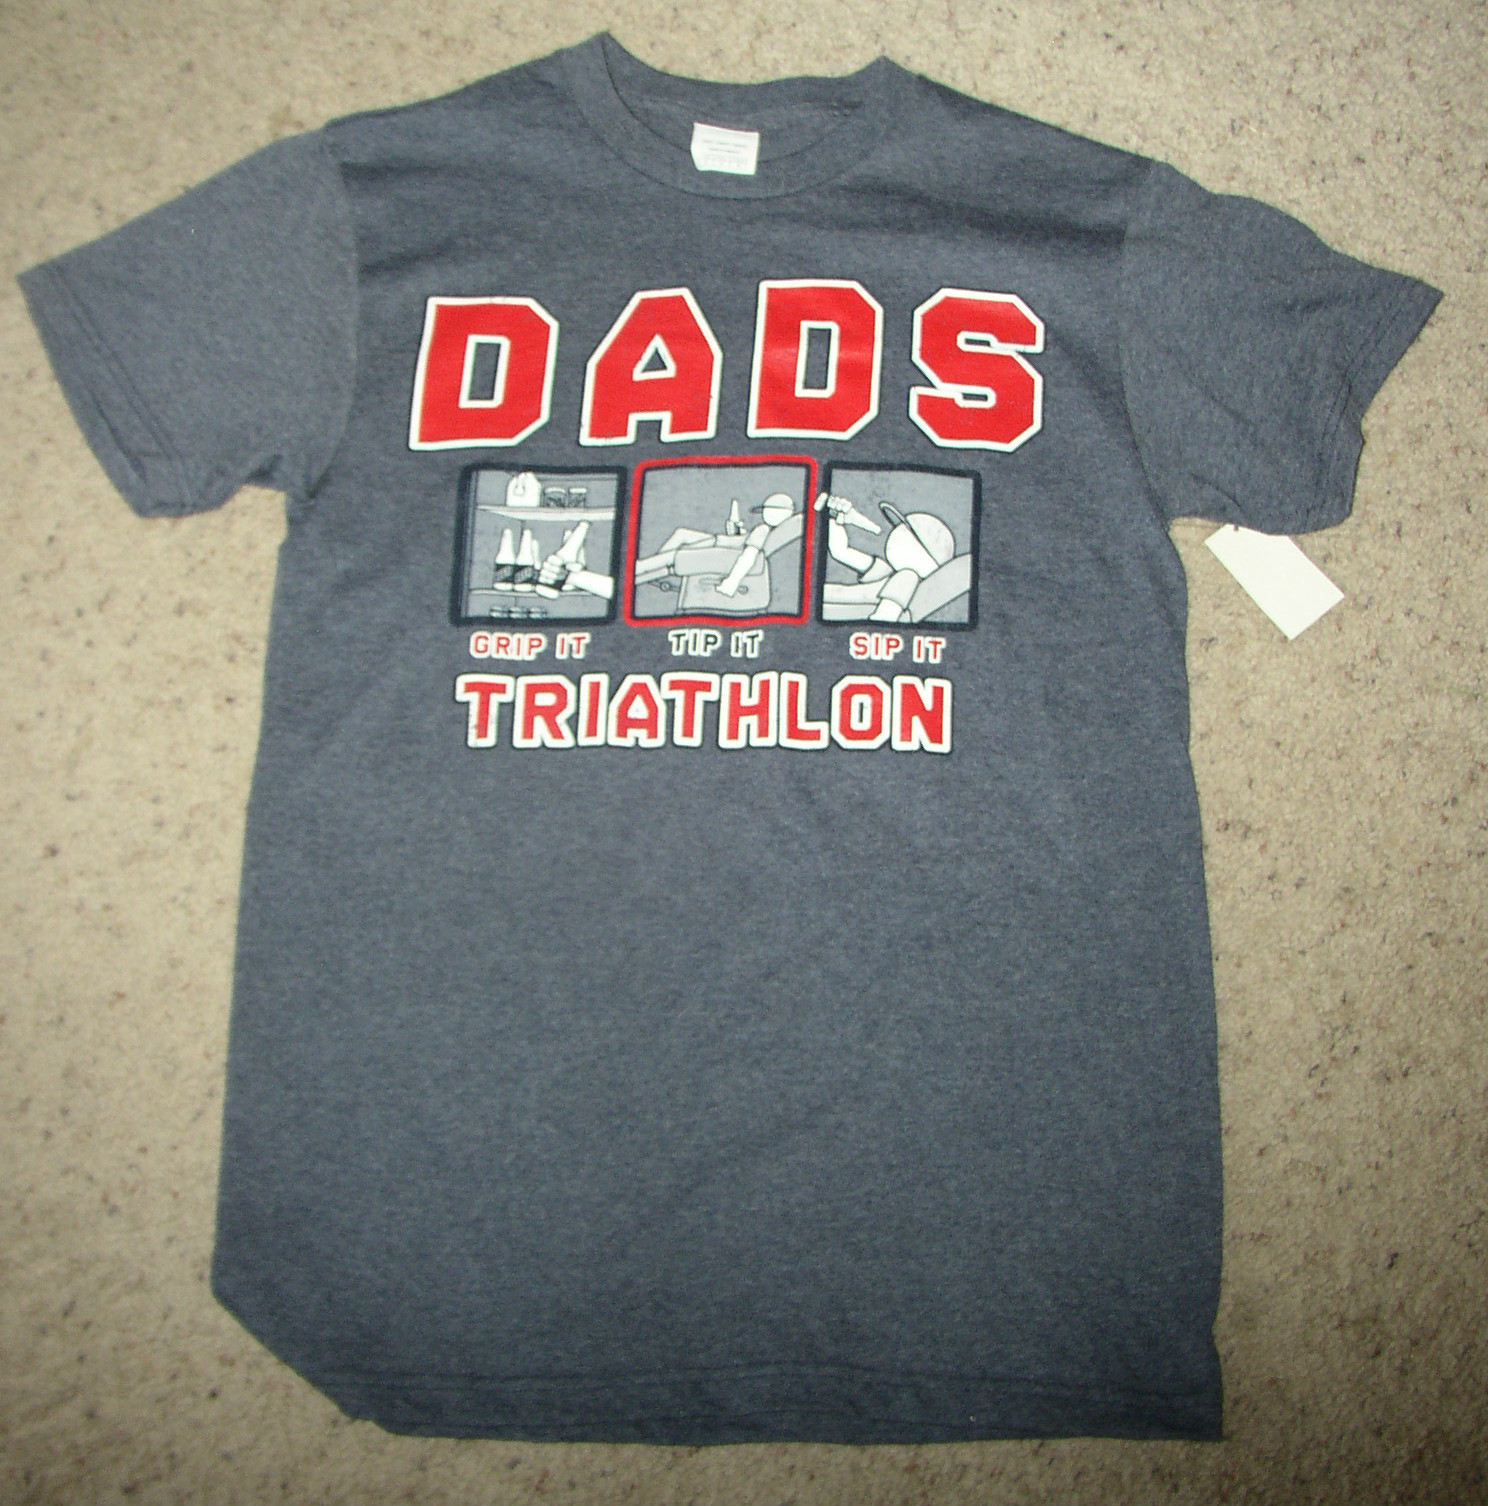 e37e360d This shirt was at Walmart for Father's Day, if you received it you might  want to rethink your approach.